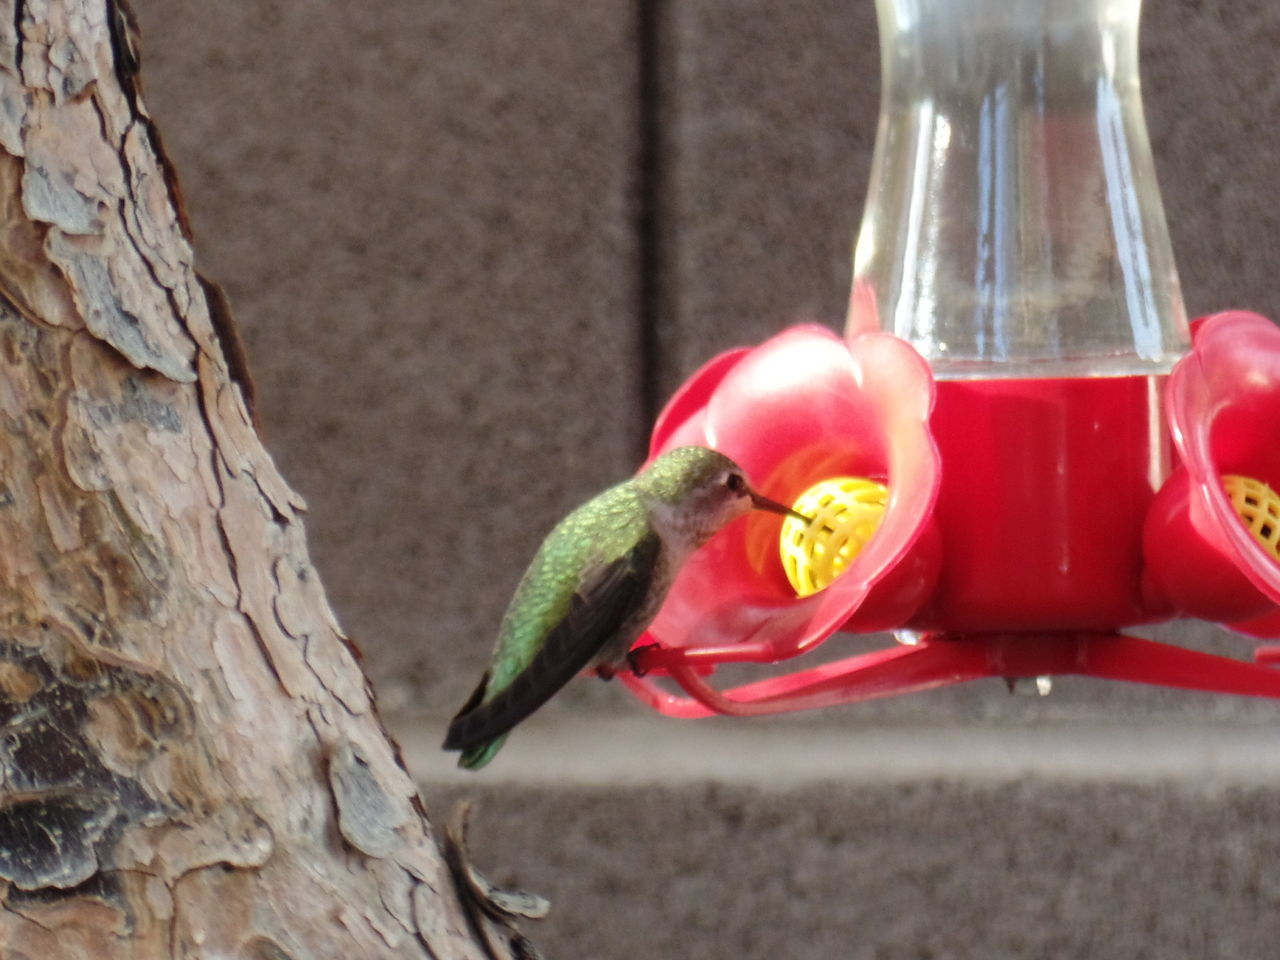 animal themes, animals in the wild, red, one animal, bird, animal wildlife, food, perching, food and drink, no people, day, bird feeder, outdoors, close-up, nature, parrot, freshness